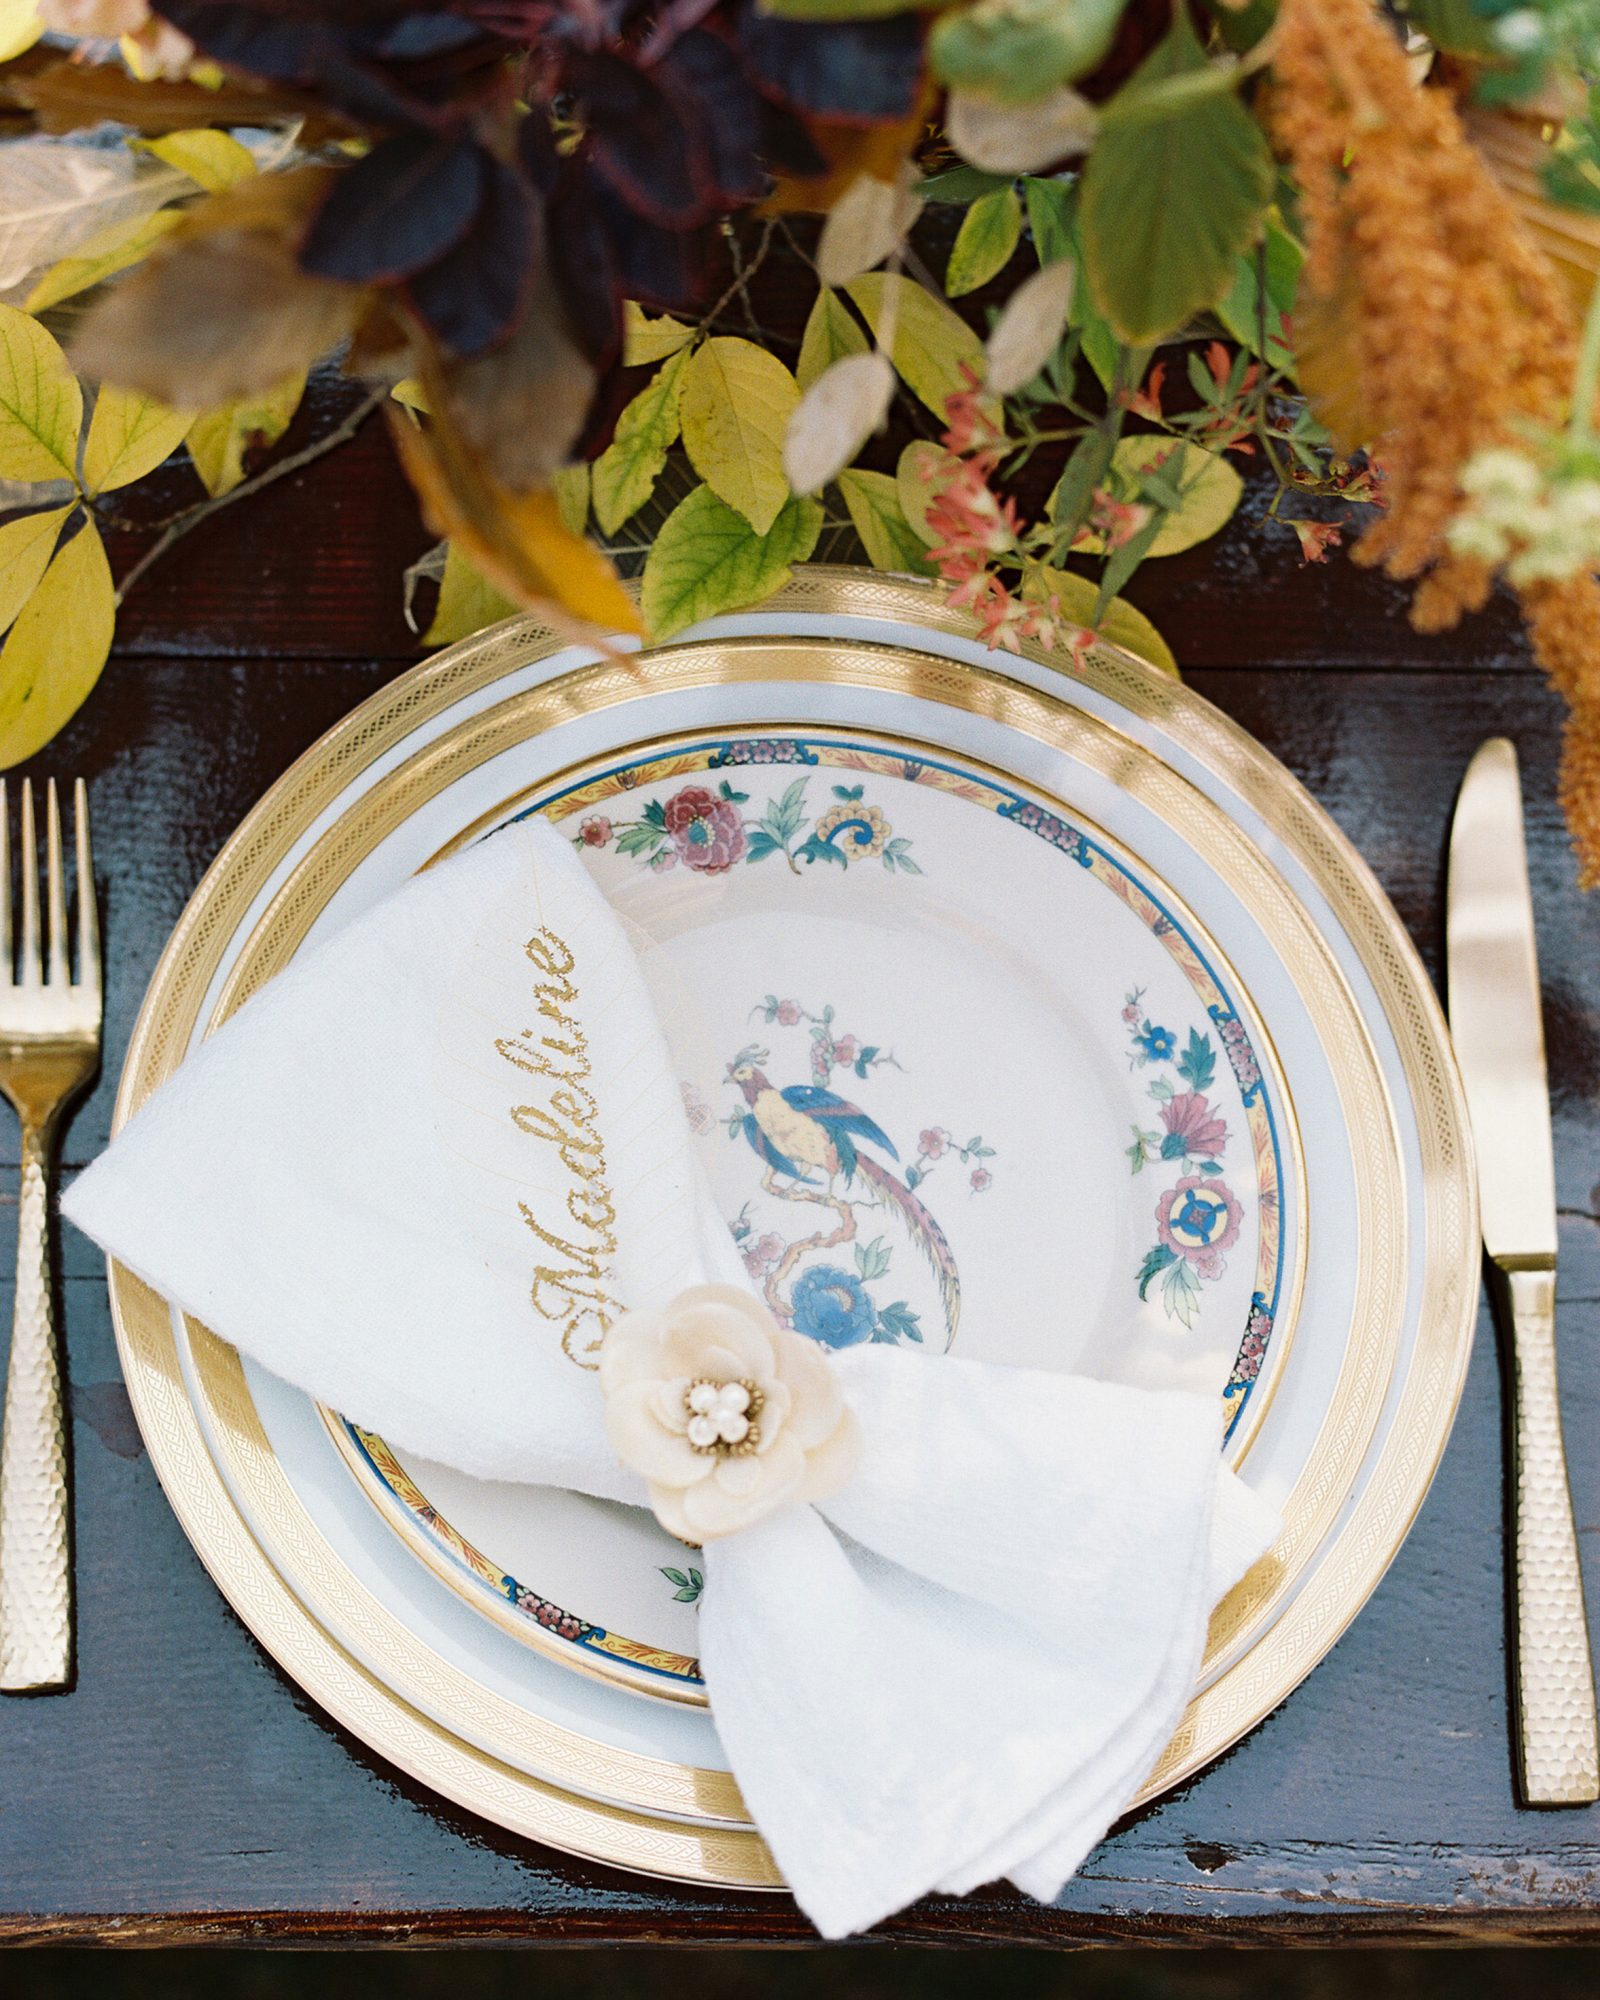 madeline brad wedding place setting